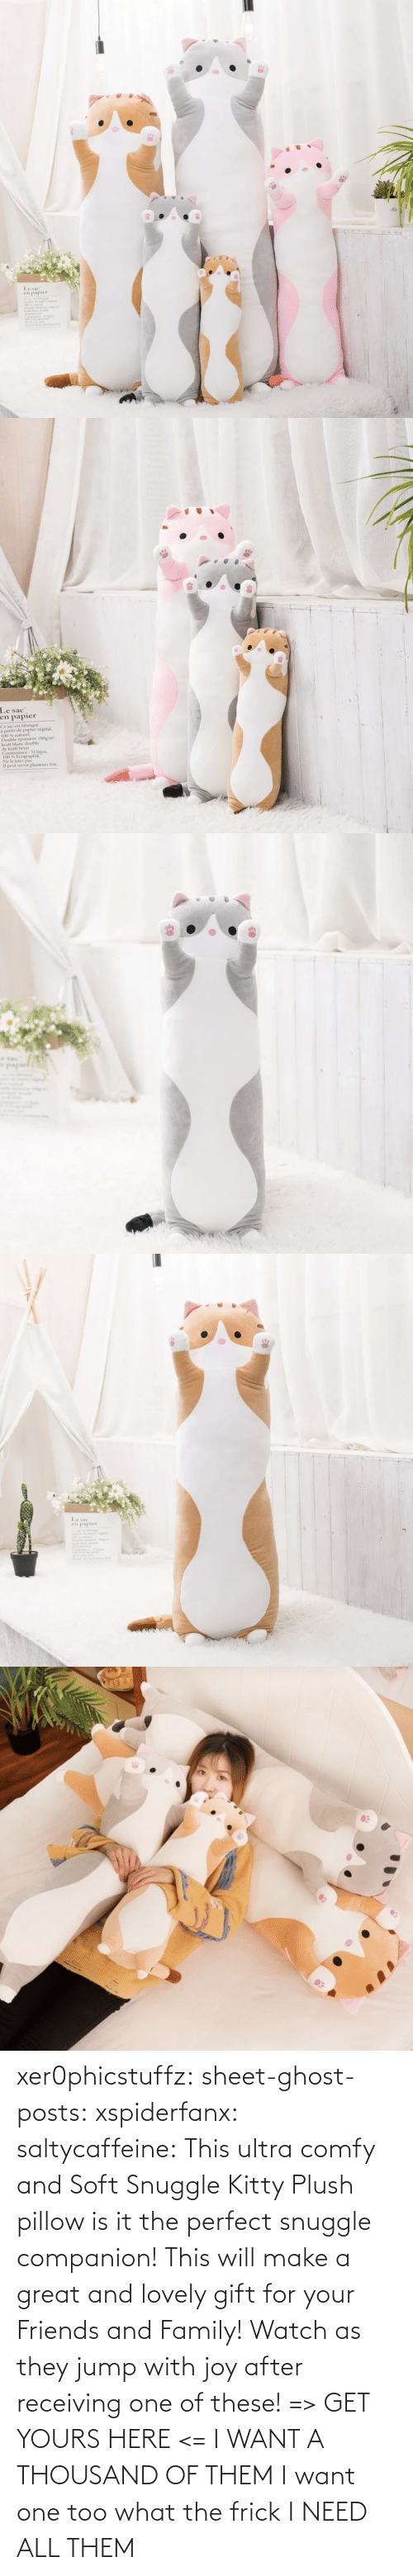 Frick: xer0phicstuffz:  sheet-ghost-posts: xspiderfanx:  saltycaffeine:  This ultra comfy and Soft Snuggle Kitty Plush pillow is it the perfect snuggle companion! This will make a great and lovely gift for your Friends and Family! Watch as they jump with joy after receiving one of these! => GET YOURS HERE <=    I WANT A THOUSAND OF THEM  I want one too what the frick    I NEED ALL THEM